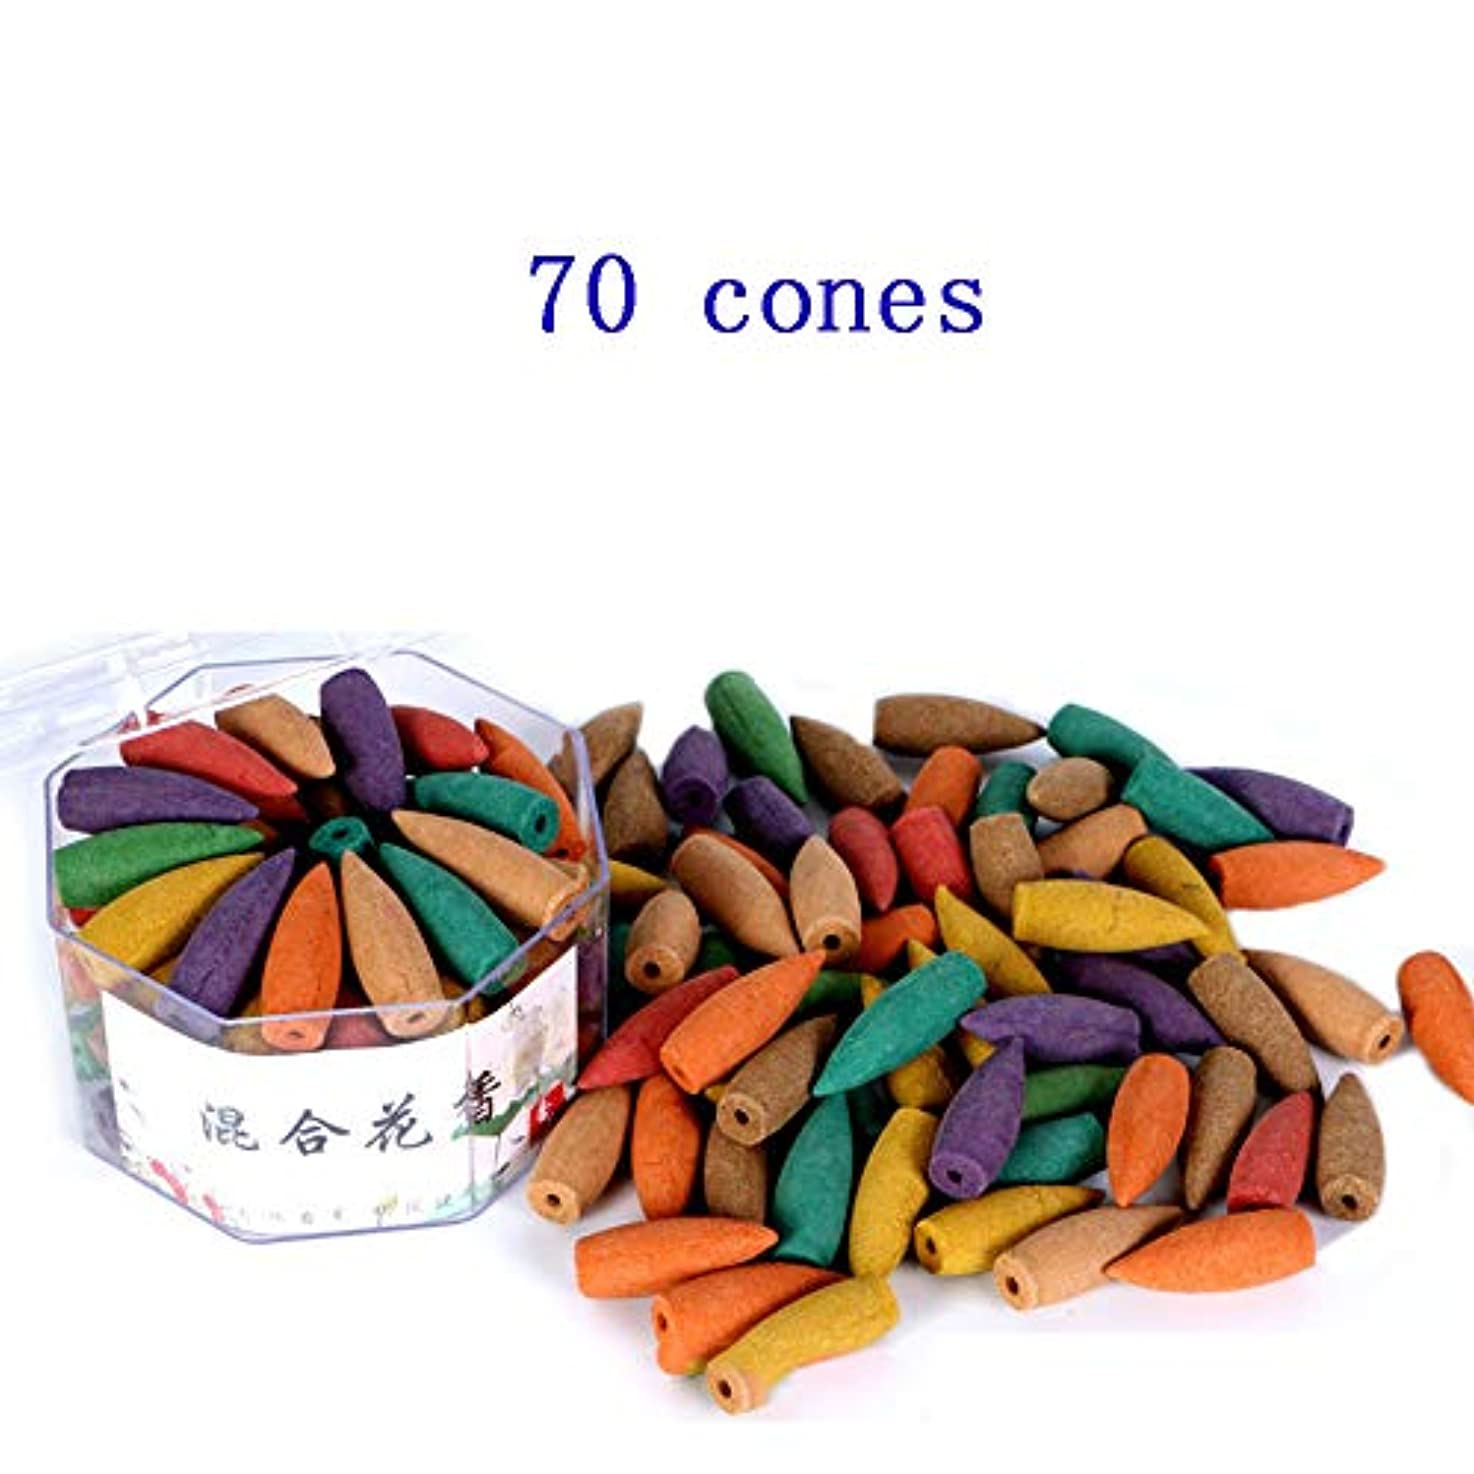 リンケージアラバマ矩形(In-70mixed) - Corcio 70pcs/box Lengthened Cone Tower Incense Backflow Incense Waterfall Cones for Incense Burner...